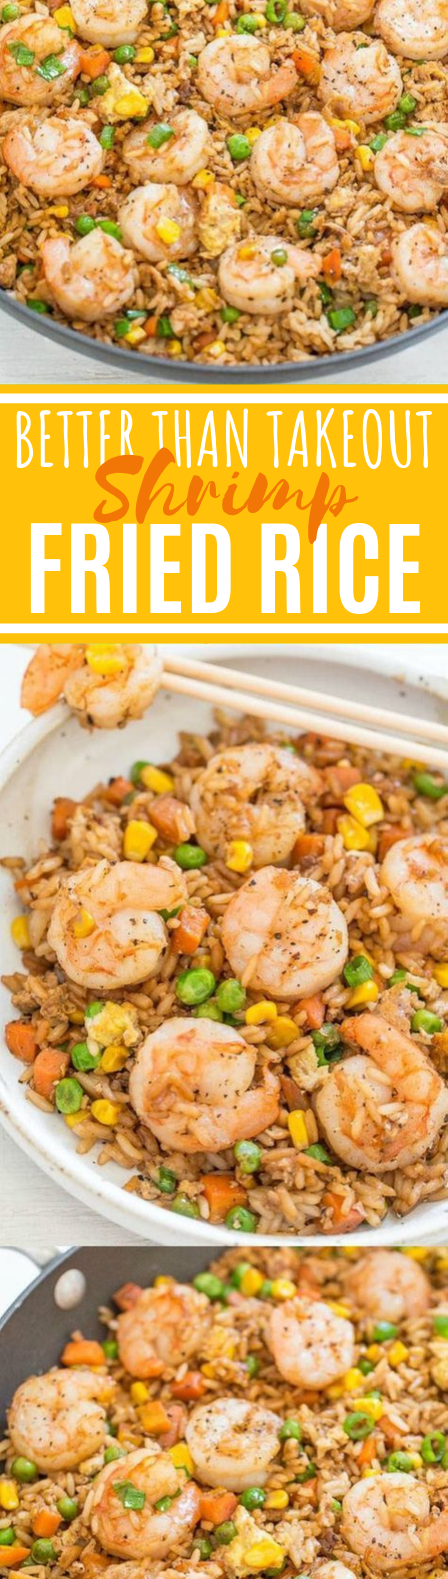 Easy Better Than Takeout Shrimp Fried Rice #dinner #recipes #chinese #food #shrimp